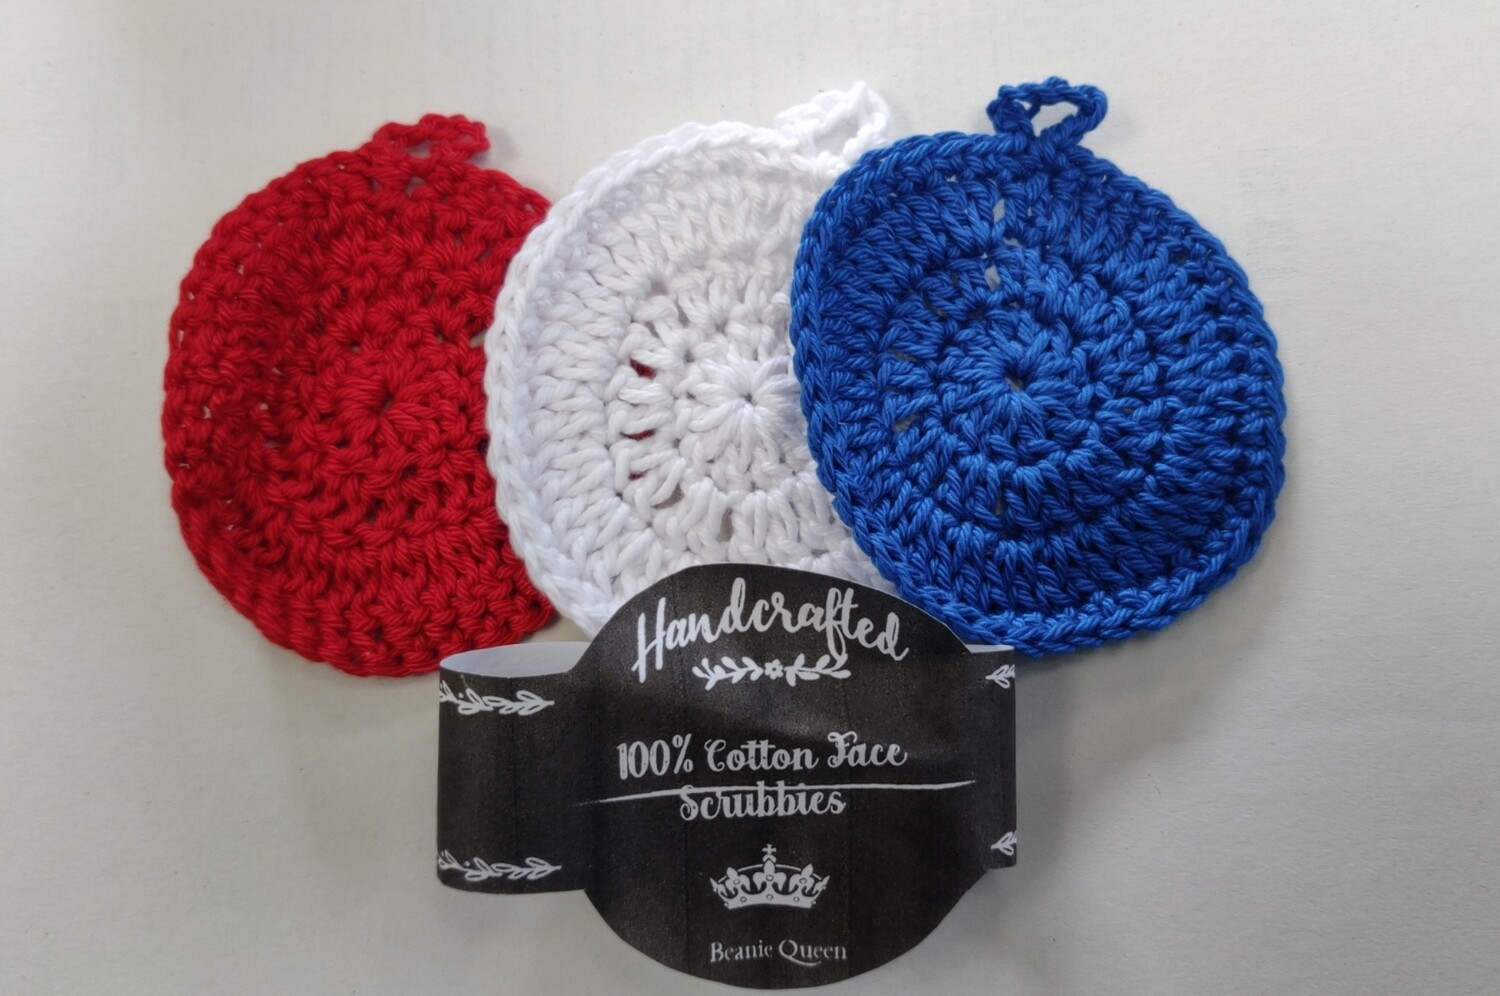 Beanie Queen Handcrafted 100% Cotton Face Scrubbies 3pk